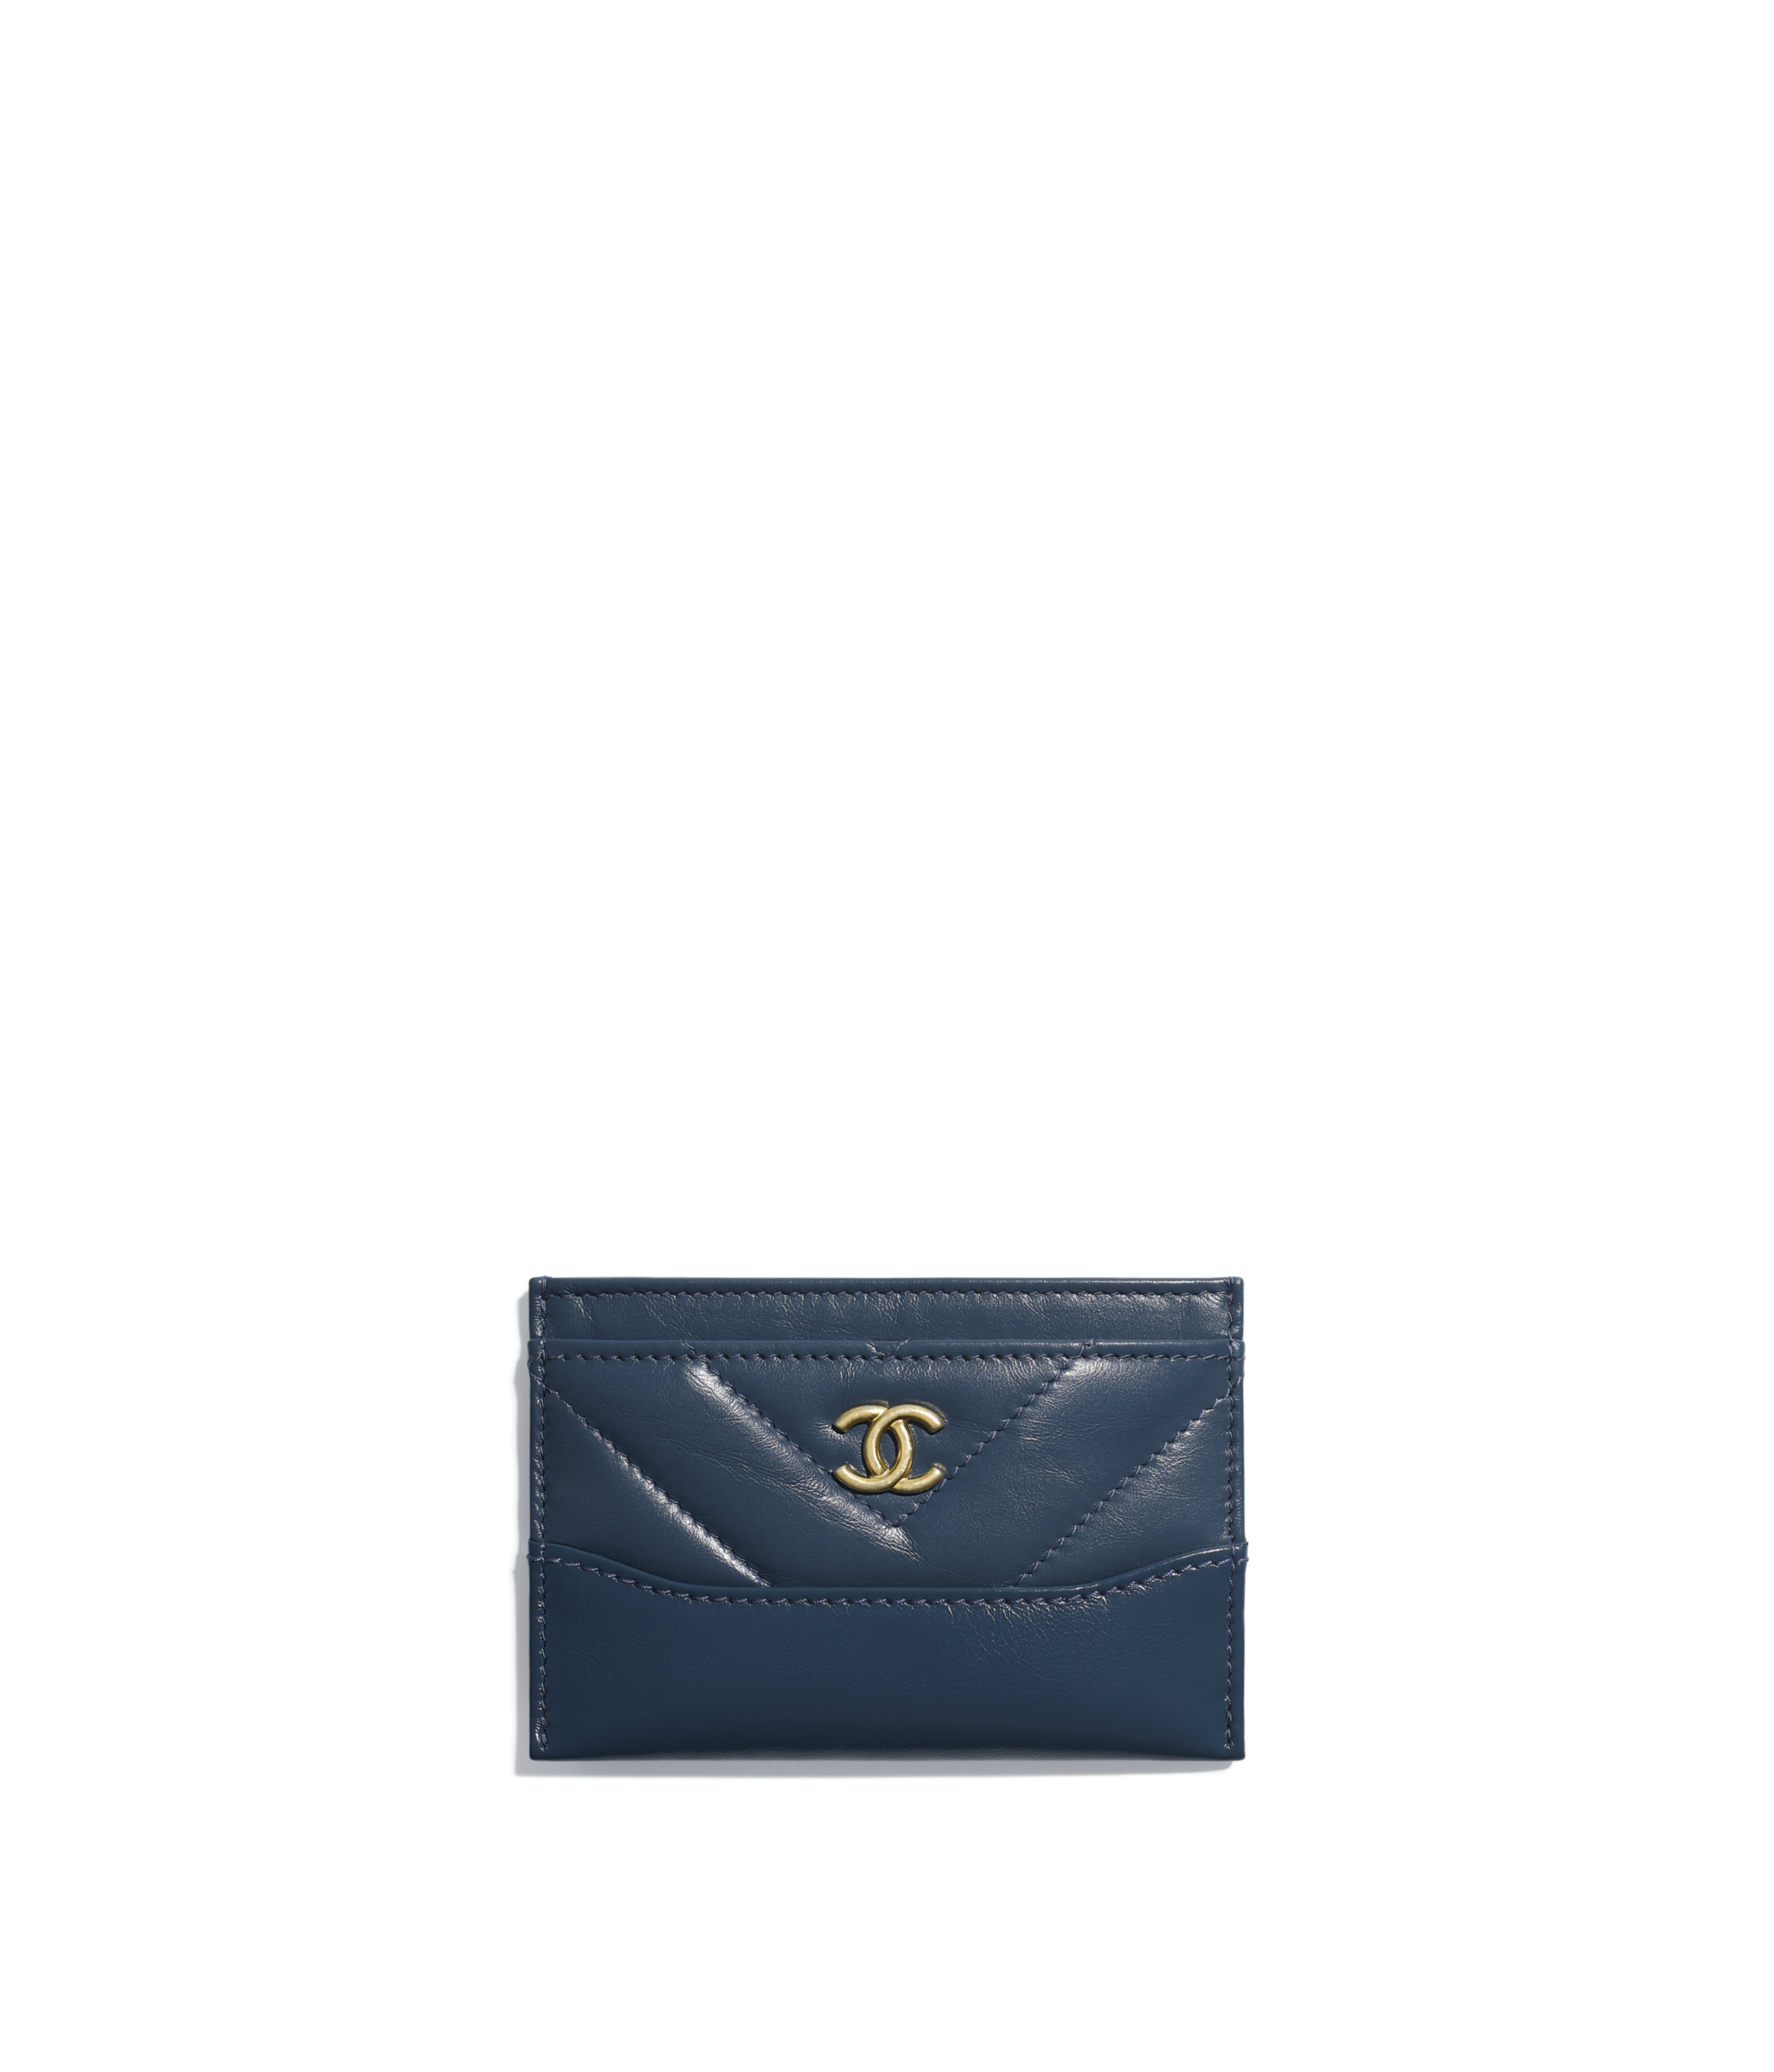 Card Holders - Small leather goods | CHANEL